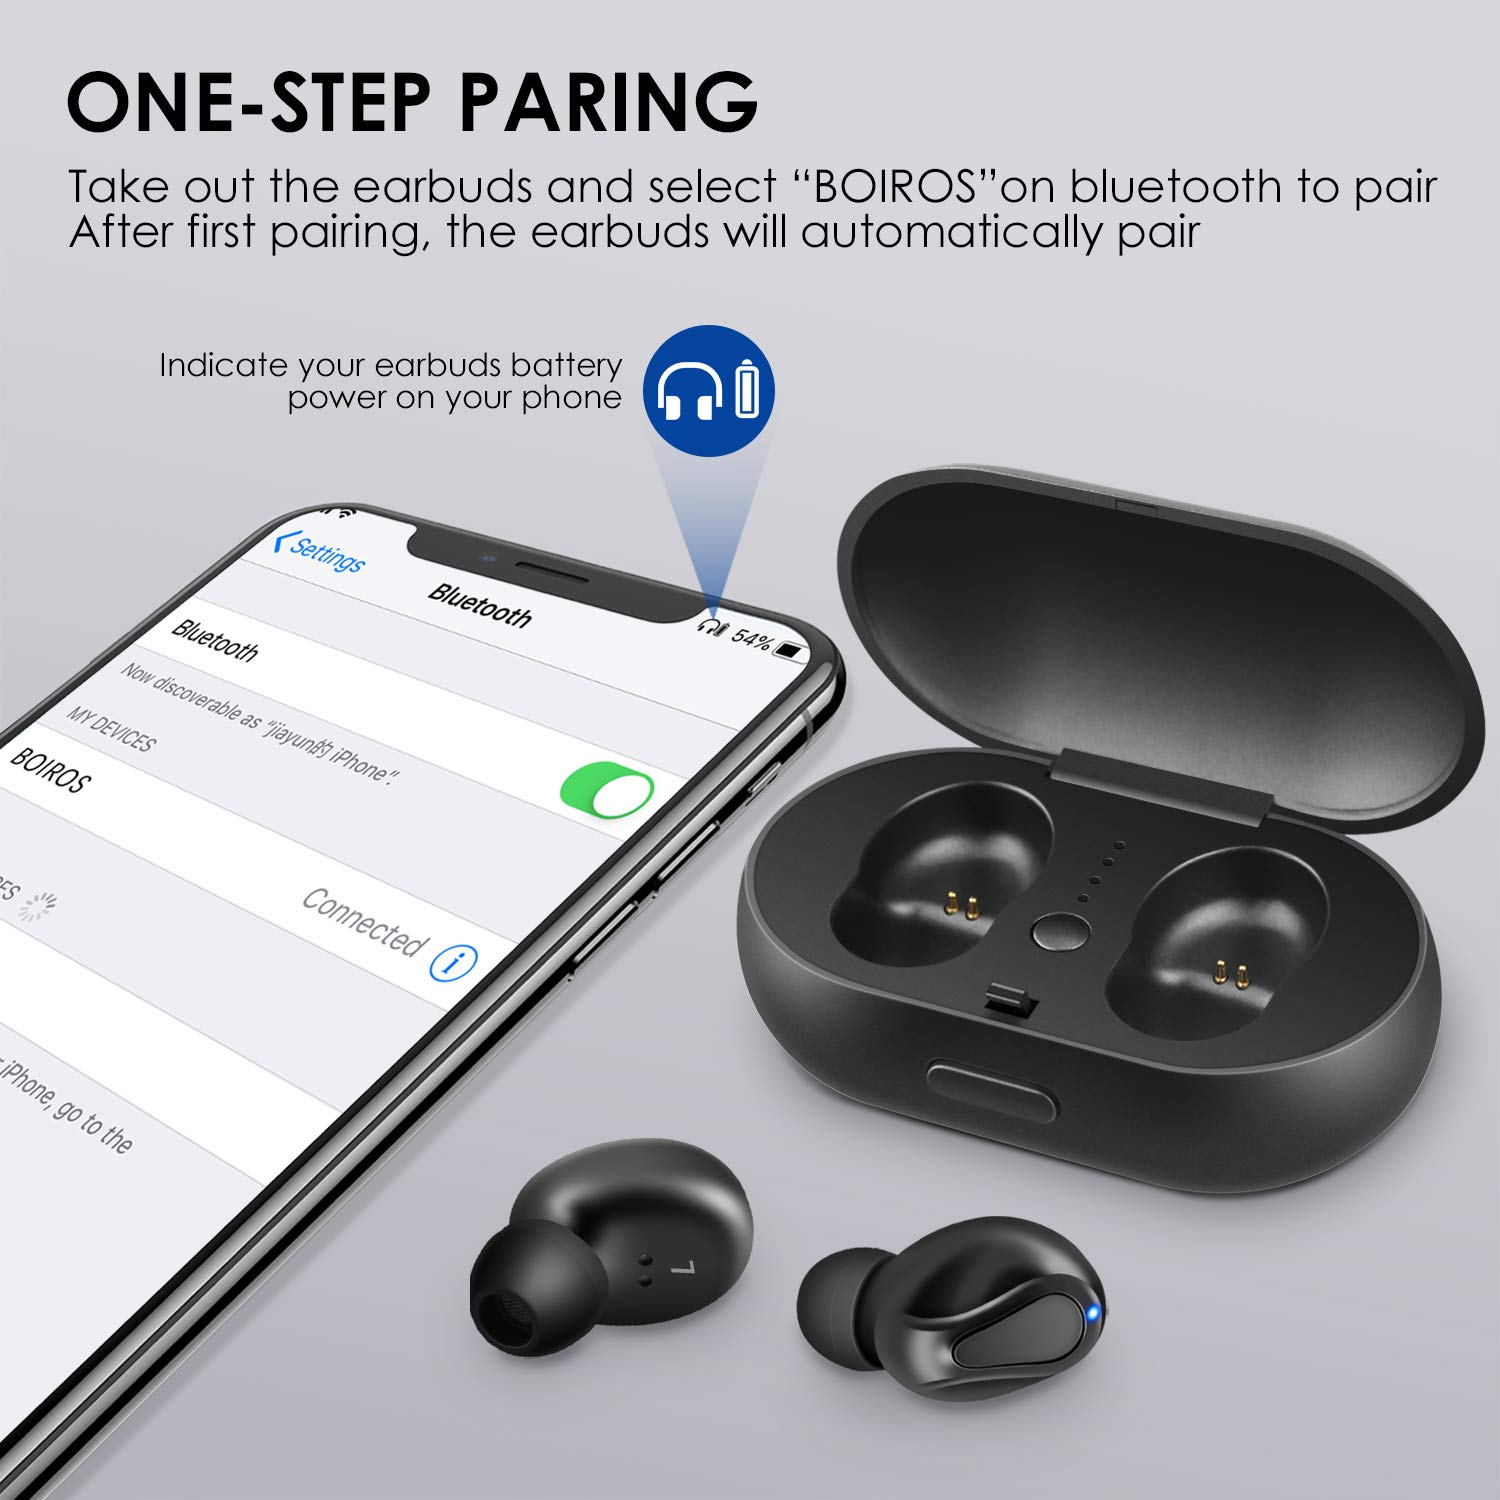 True Wireless Earbuds Bluetooth 5.0 Earphones – Wireless in Ear Headphones Headset Stereo Sound Deep Bass Built in Mic Single Twin Mode 24H Playtime with Charging Case for Sport Running